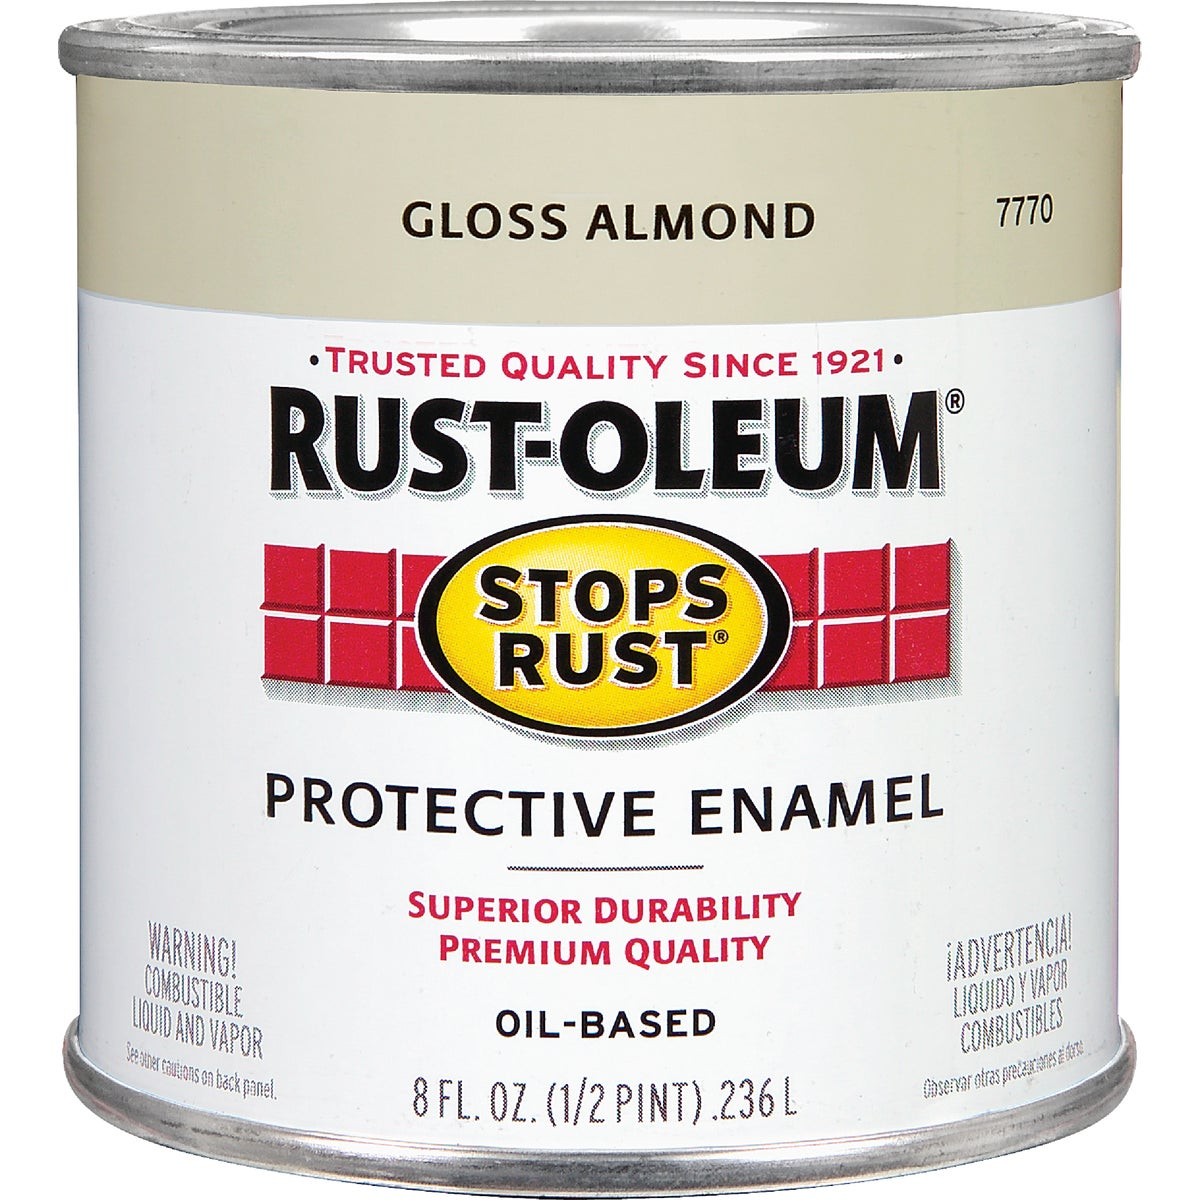 ALMOND ENAMEL - 7770-730 by Rustoleum